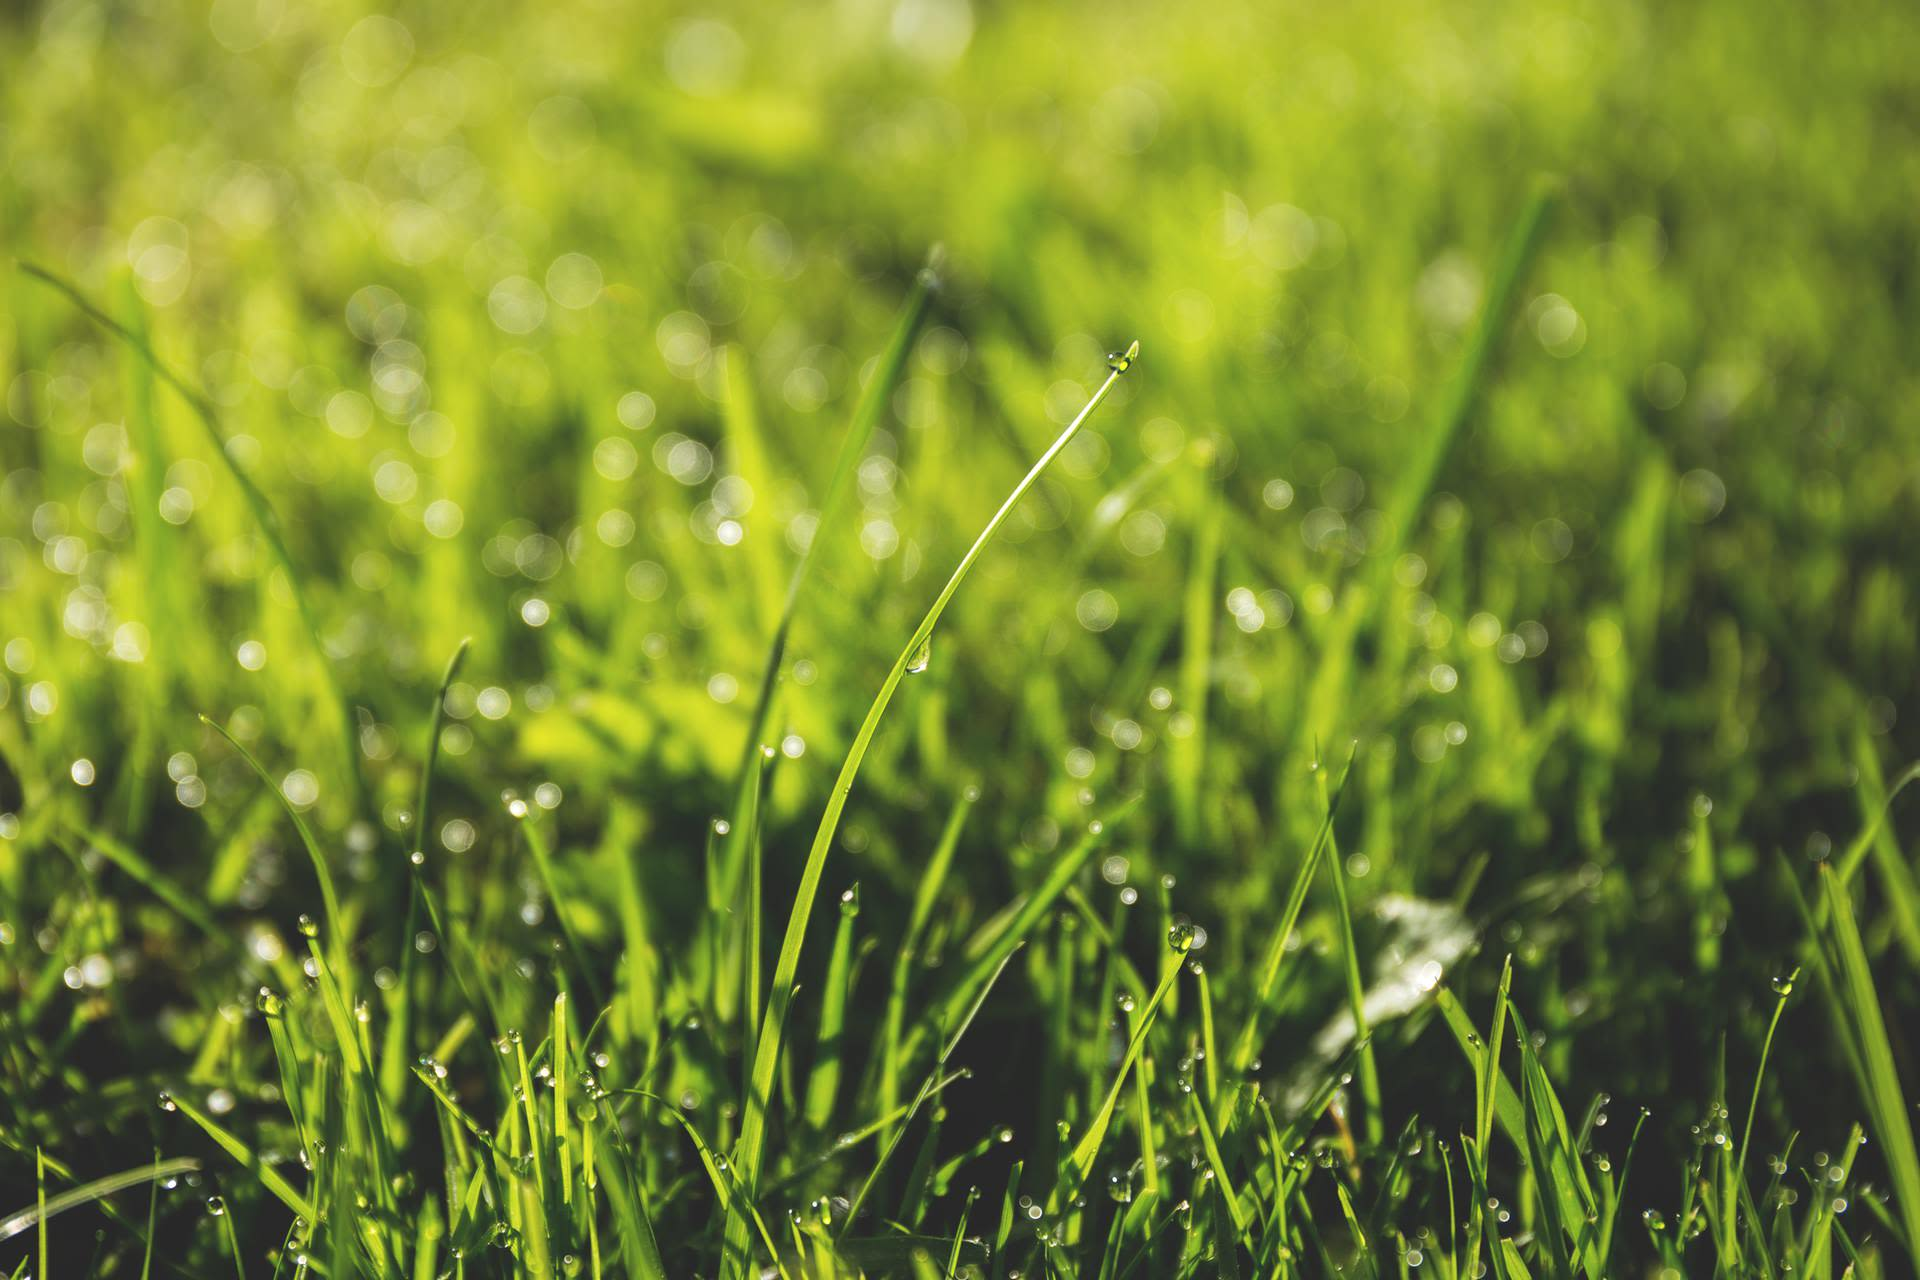 Taking Care of Your Austin Lawn Without Wasting Resources